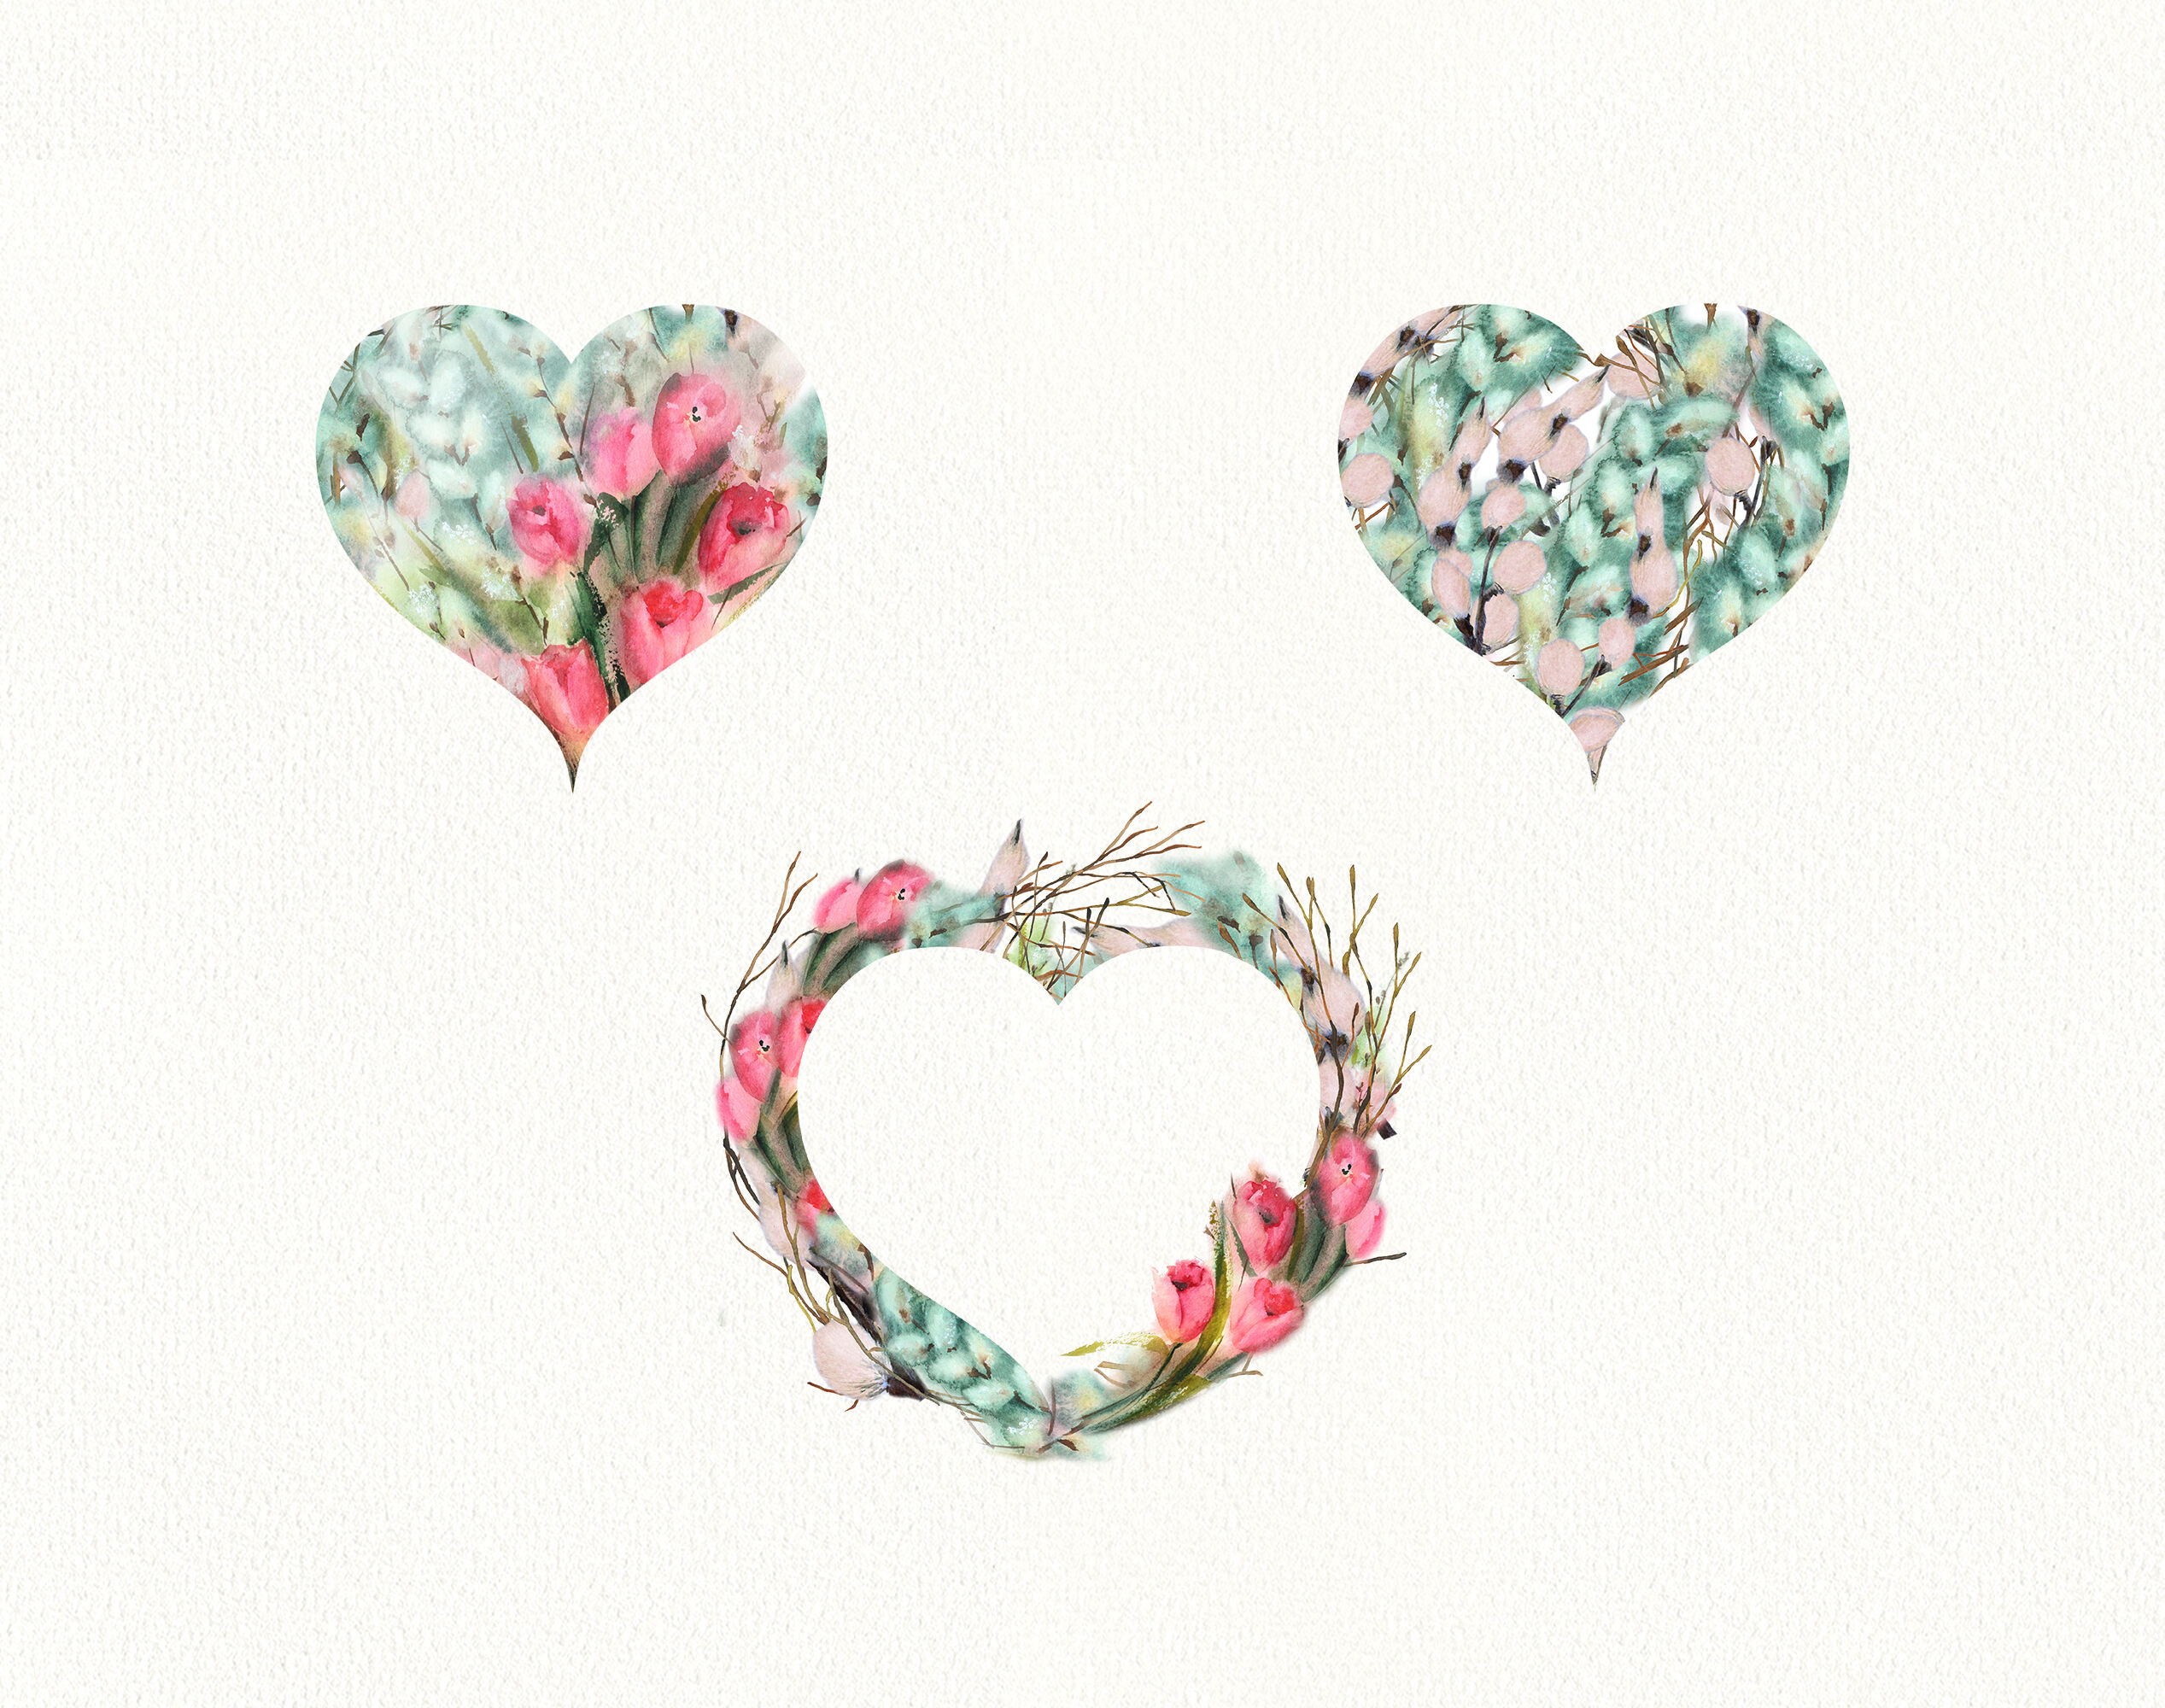 Watercolor Tulips Willow Valentines Hearts Floral Heart Clipart